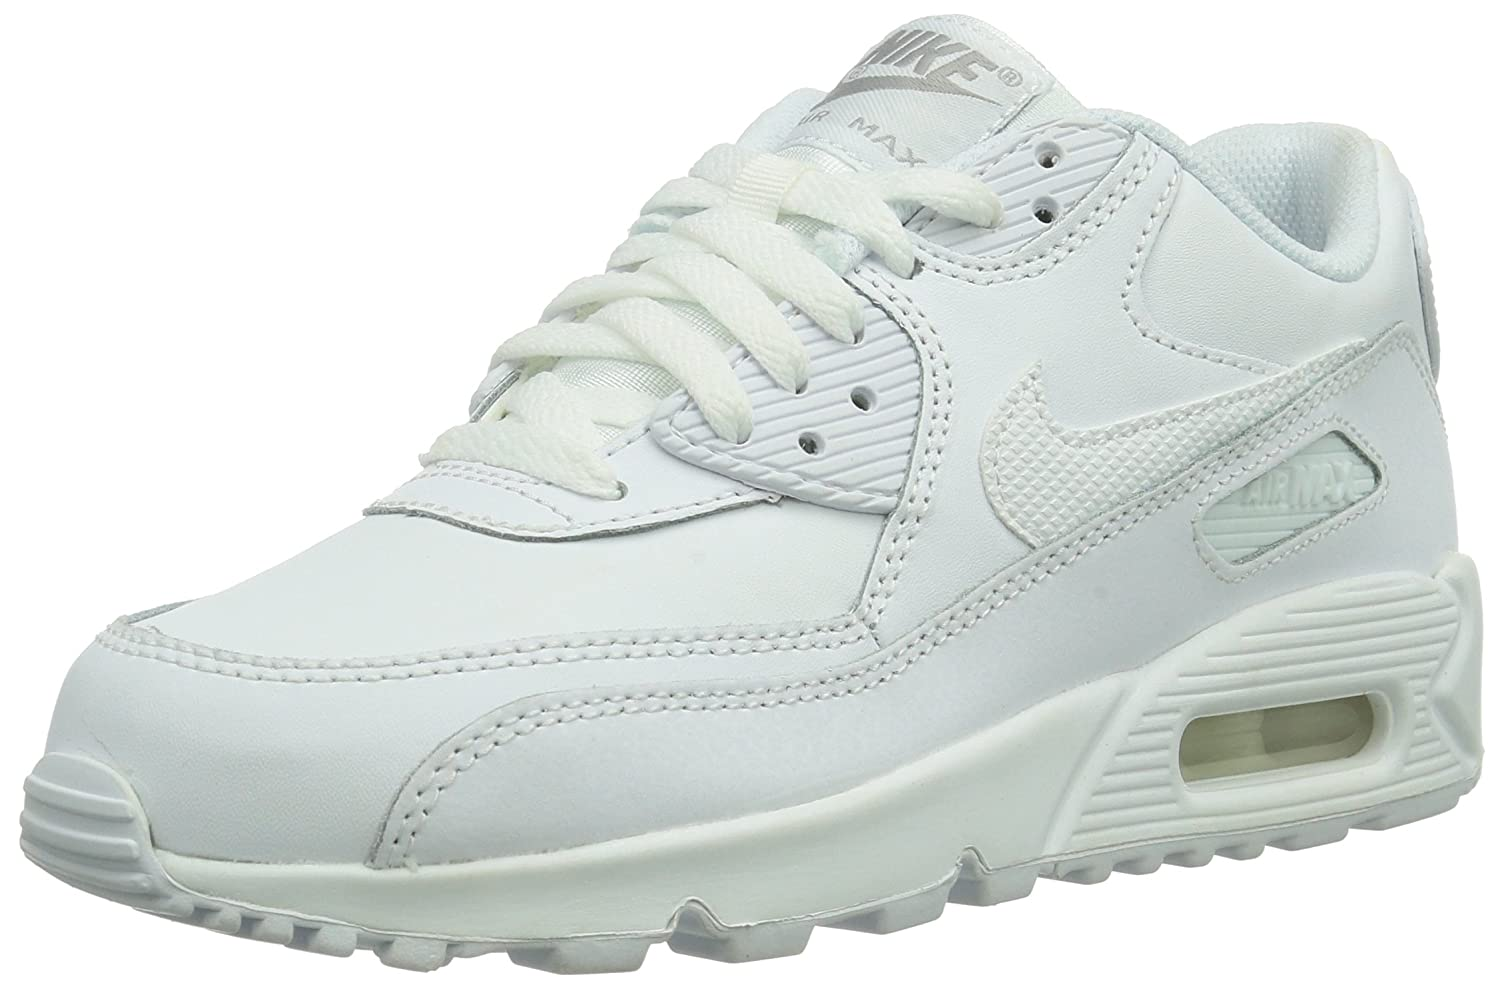 12 201817 Nike W Air Max 1 Ultra Essentials WhiteWolf Grey